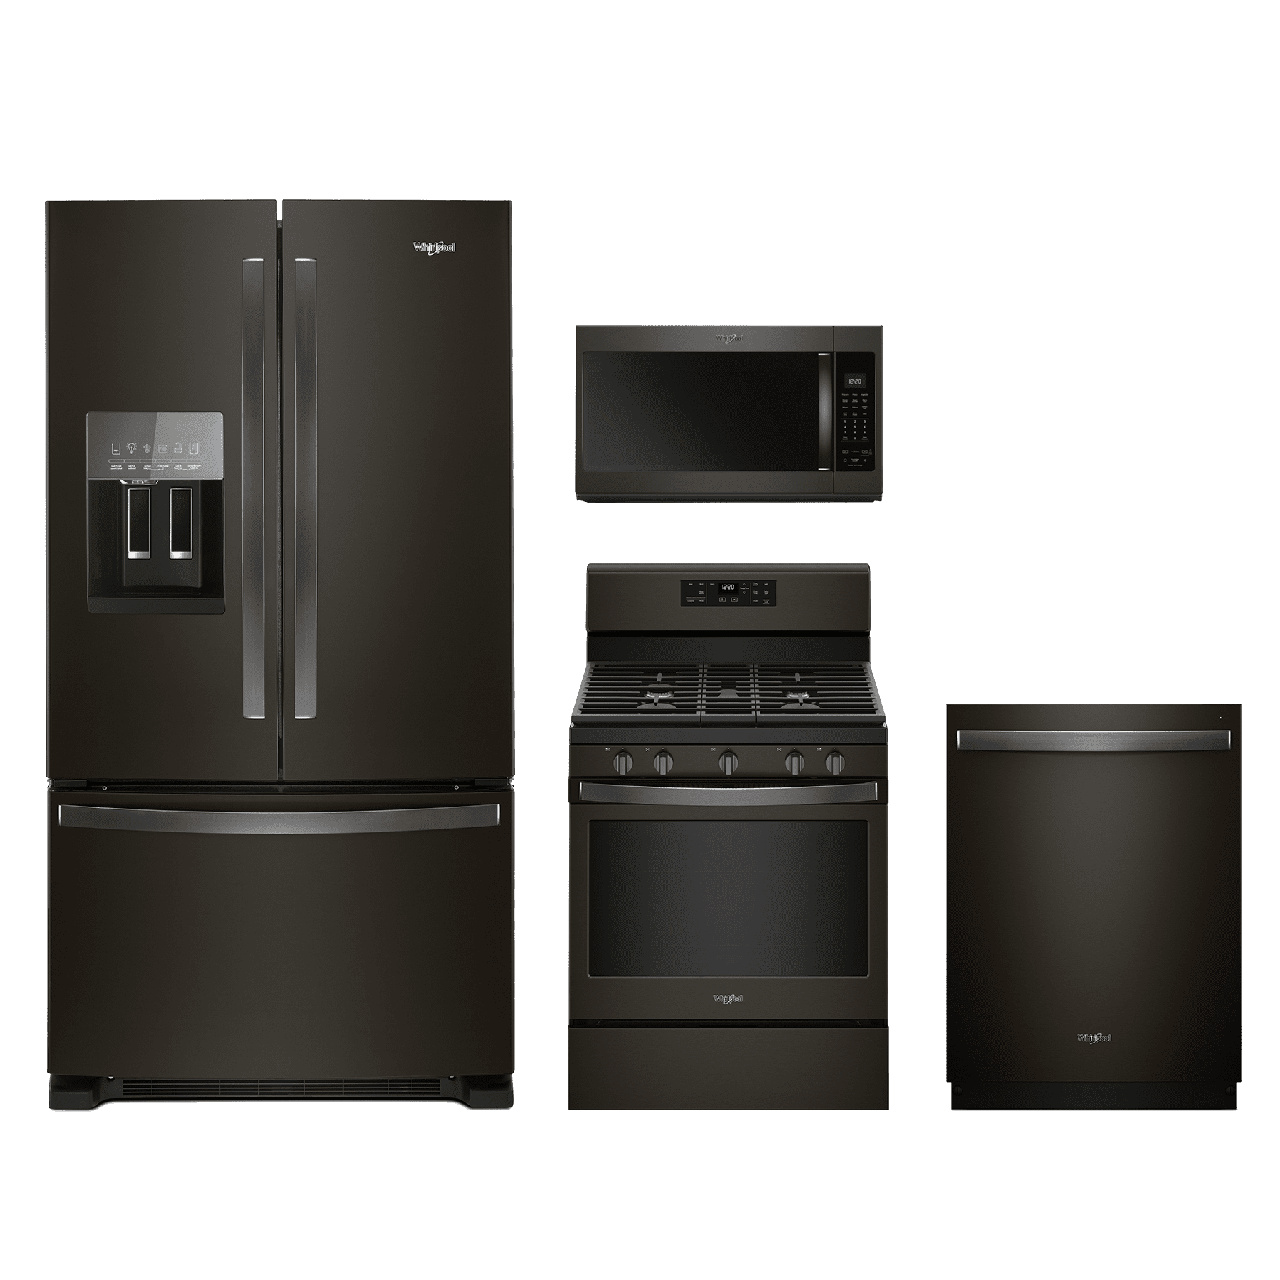 Kitchen Appliance Packages Home Appliances - Kitchen Appliances ...